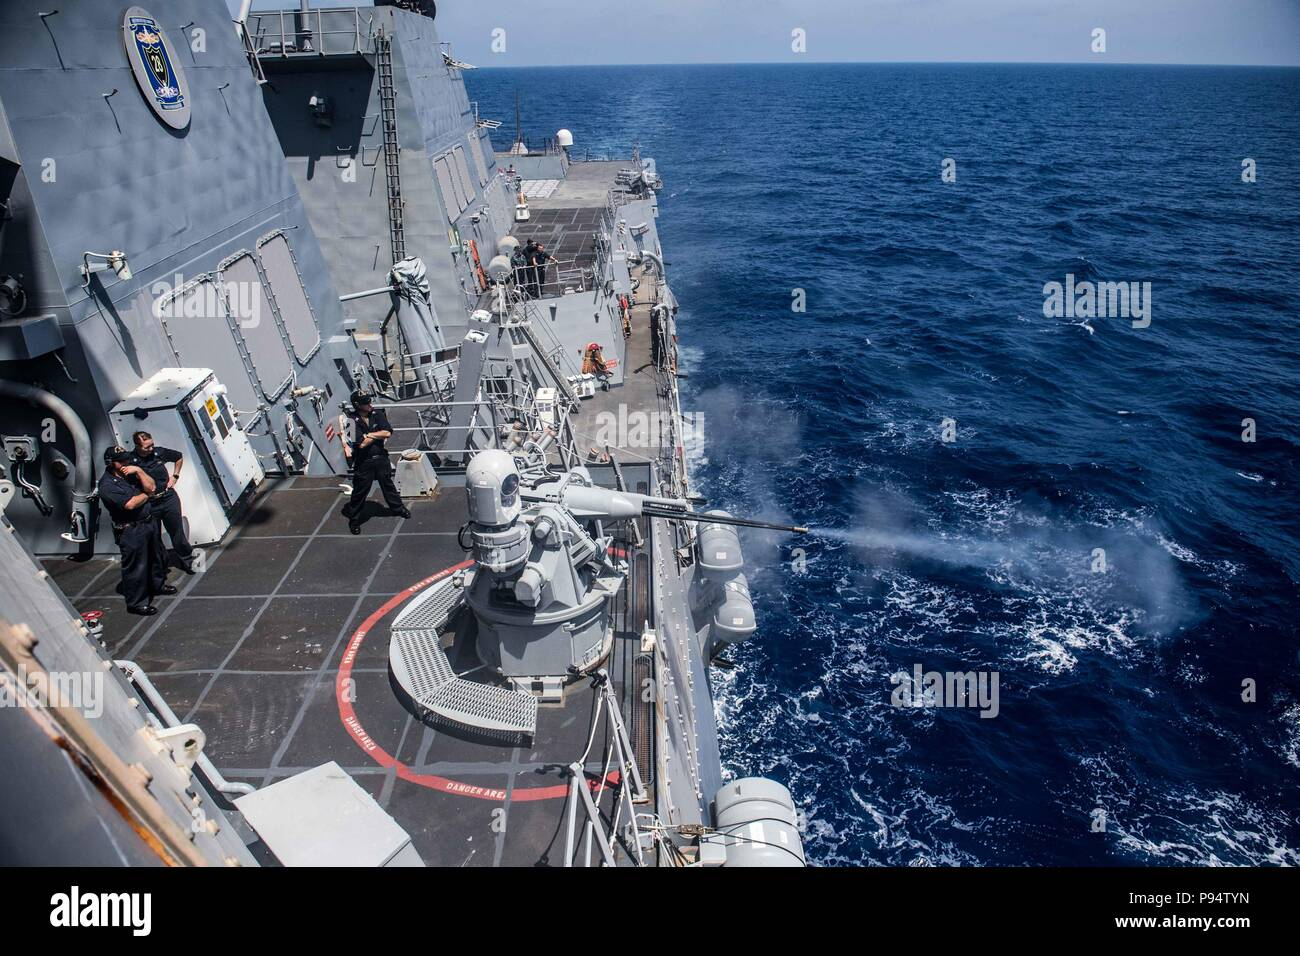 180627-N-UX013-0283 MEDITERRANEAN SEA (June 27, 2018) The guided-missile destroyer USS Jason Dunham (DDG 109) fires its MK-38 25mm machine gun during a pre-action calibration fire exercise. Dunham is operating in the U.S. 6th Fleet area of operations in support of U.S. national security interests in Europe. (U.S. Navy photo by Mass Communication Specialist 3rd Class Jonathan Clay/Released) Stock Photo